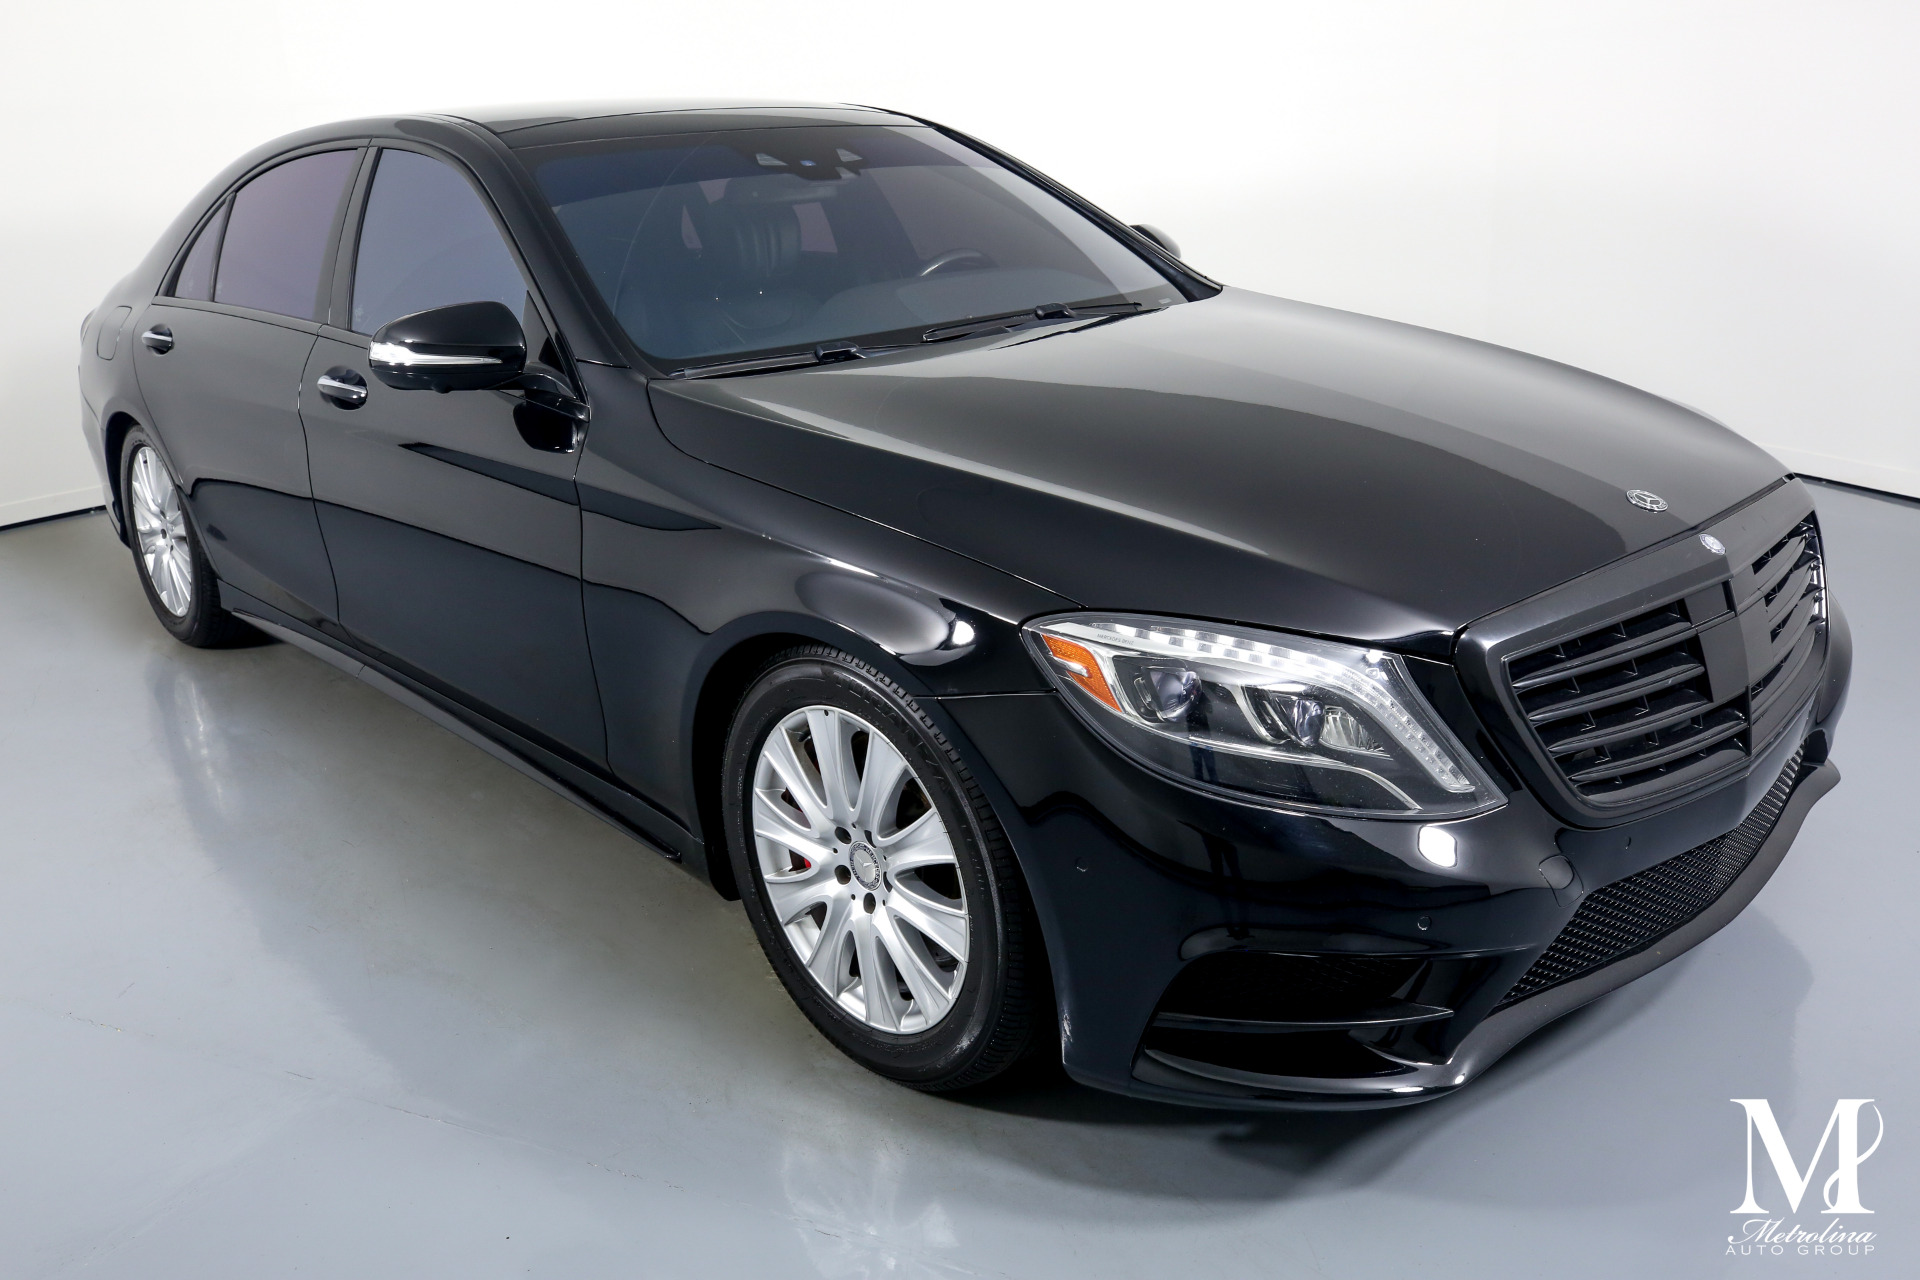 Used 2017 Mercedes-Benz S-Class S 550 for sale Sold at Metrolina Auto Group in Charlotte NC 28217 - 2